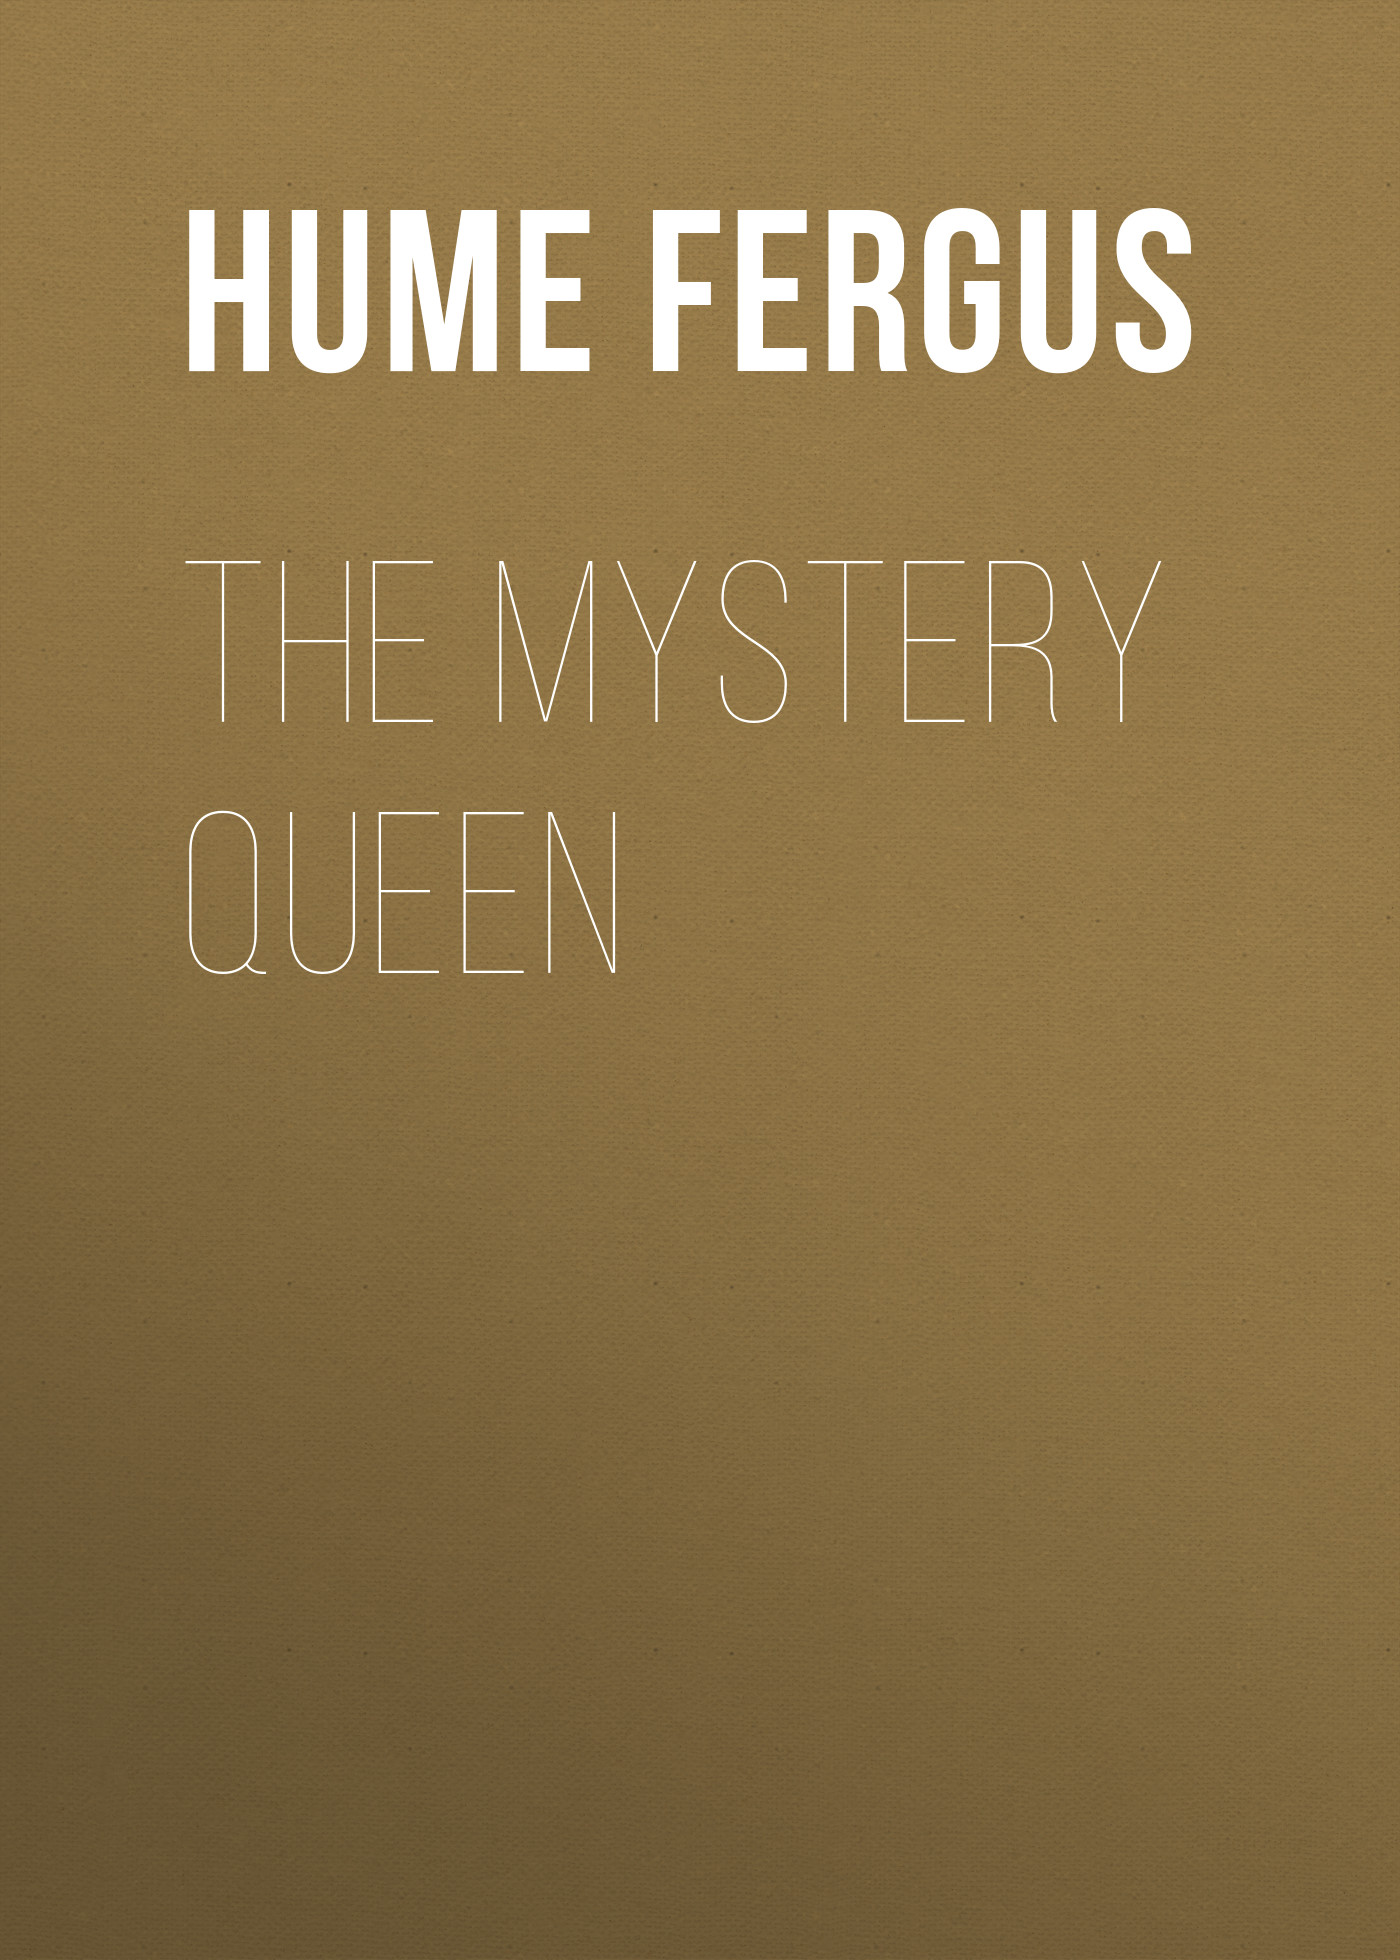 все цены на Hume Fergus The Mystery Queen